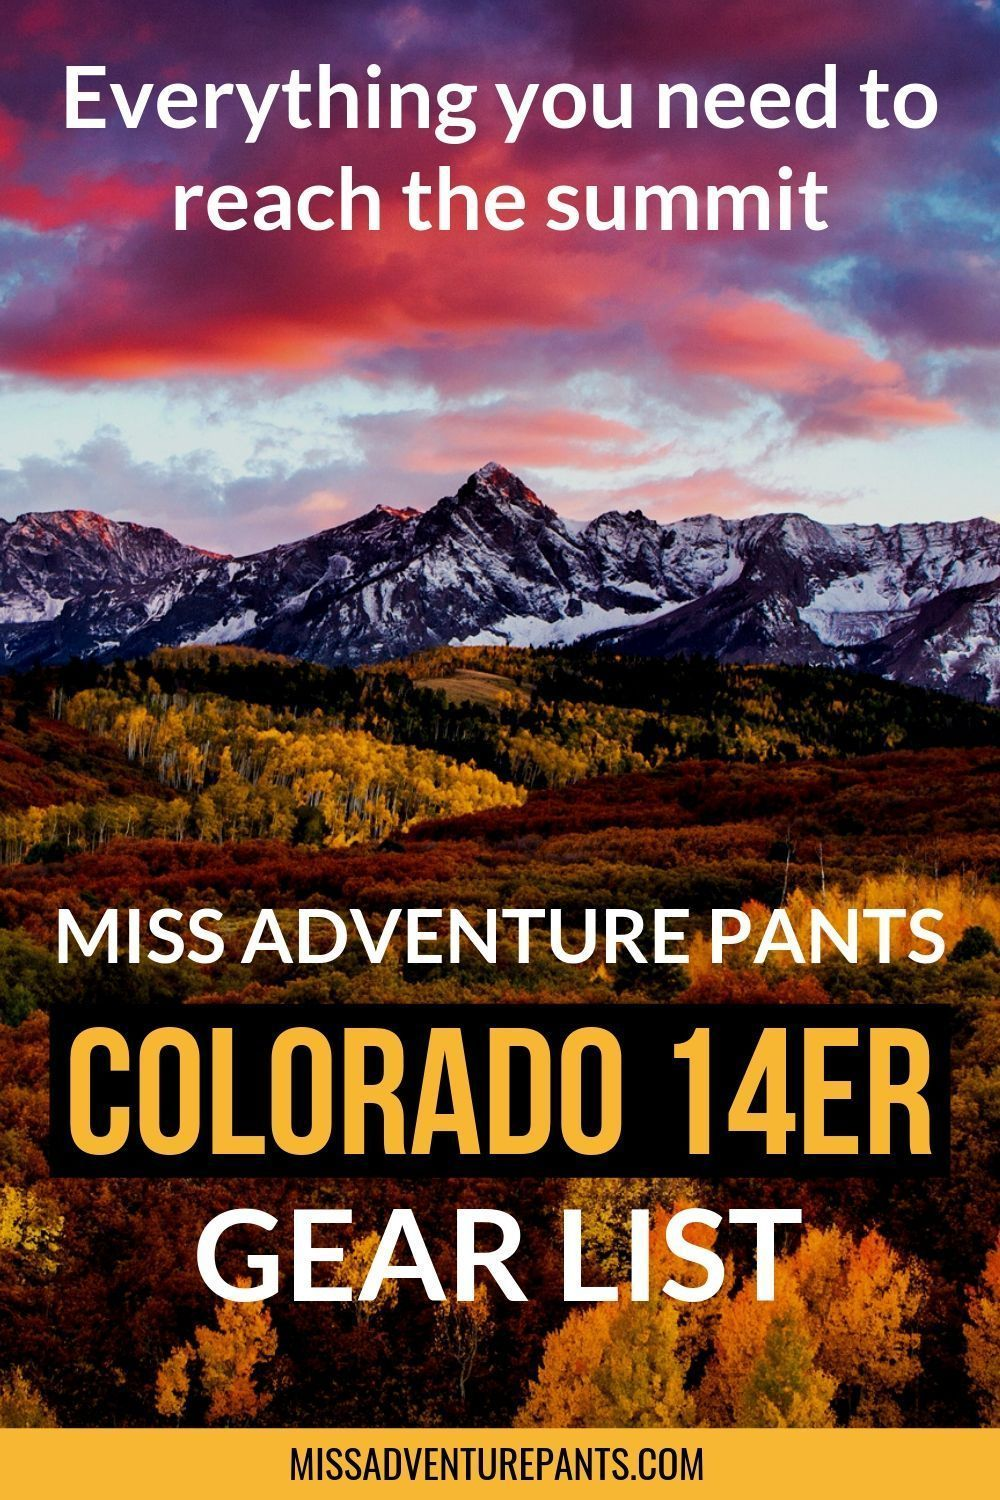 FREE Colorado 14er Starter Kit -  The 14ers are some of Colorado's most exciting hiking trails, and many are suitable for fit begin - #14er #AppalachianTrail #colorado #ColoradoHiking #Free #HikingTrails #kit #PacificCrestTrail #starter #Wanderlust